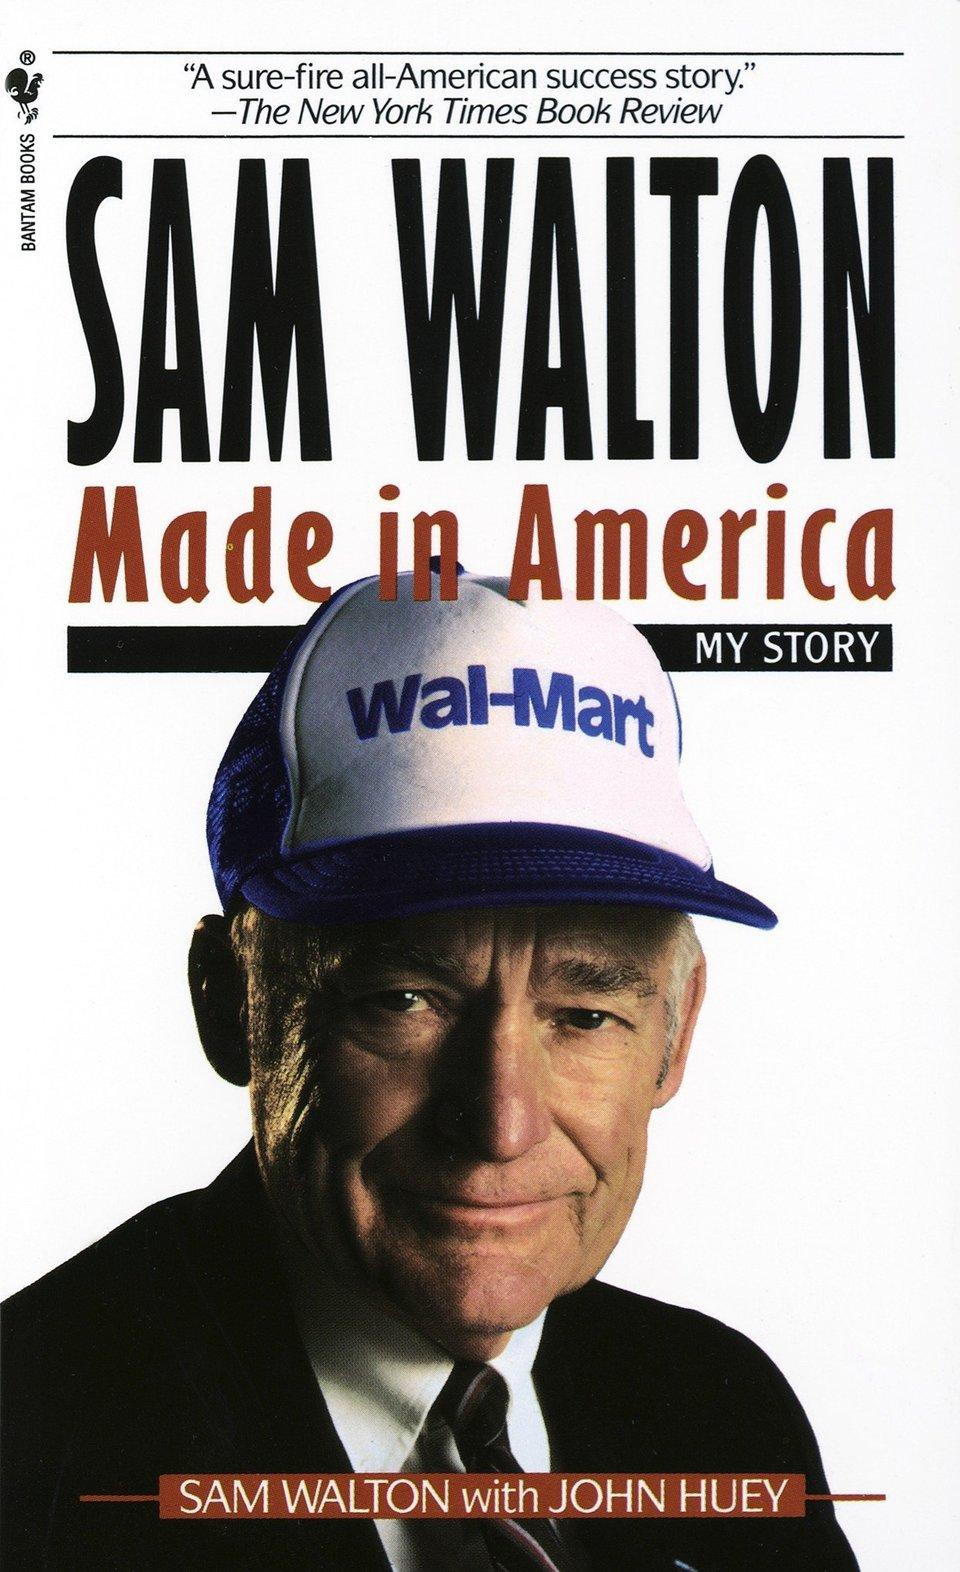 the success of sam walton In 1962, when sam walton opened the first wal-mart store in rogers, arkansas, no one could have ever predicted the enormous success this small-town merchant would have sam waltons talent for discount retailing not only made wal-mart the worlds largest.